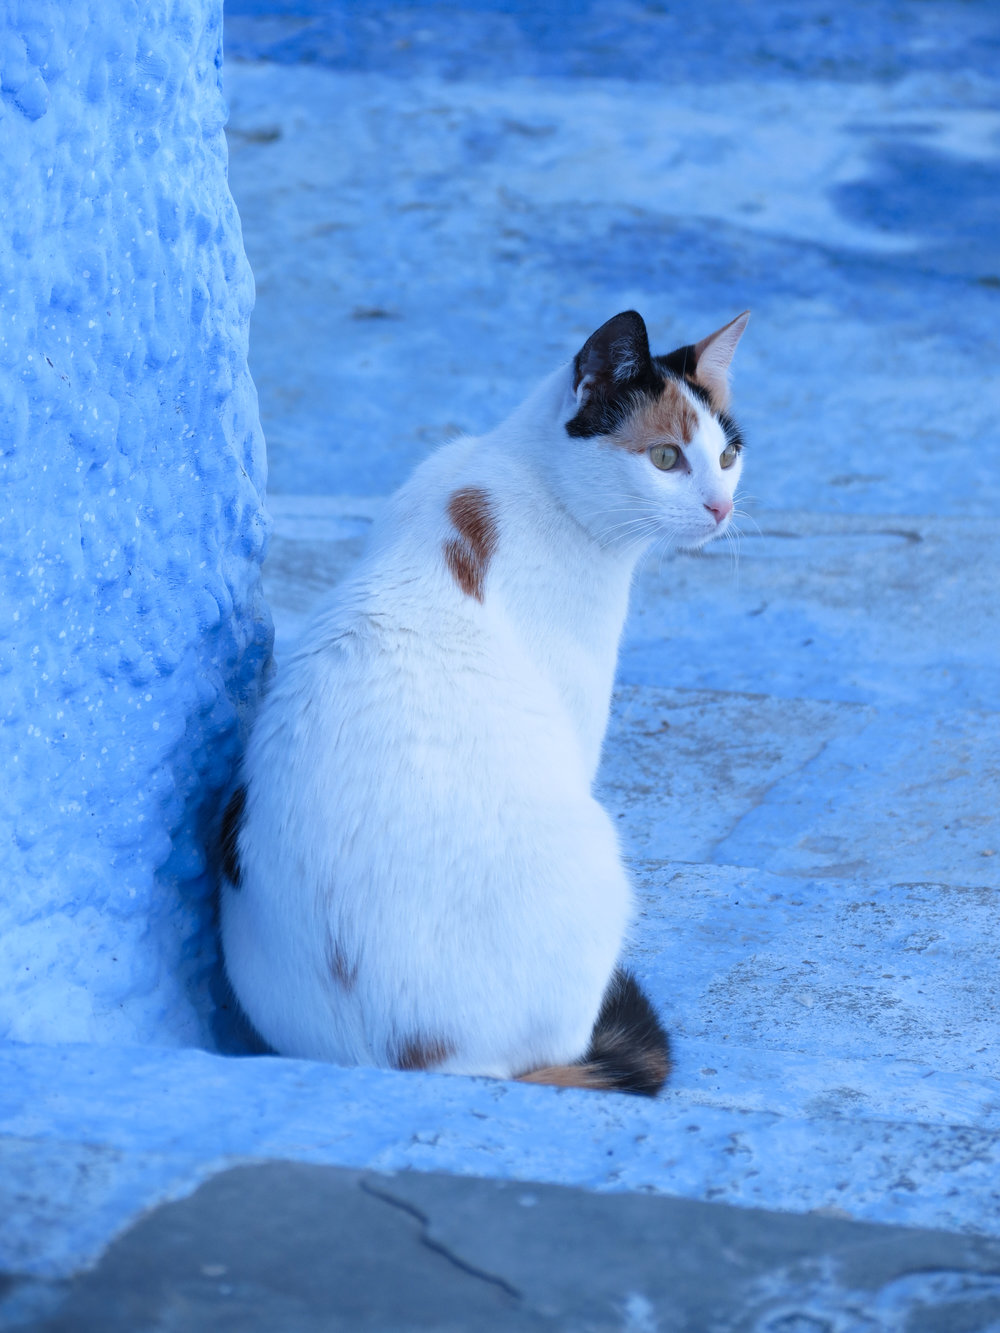 A cat sits against the blue-washed walls of Chefchaouen, Morocco.